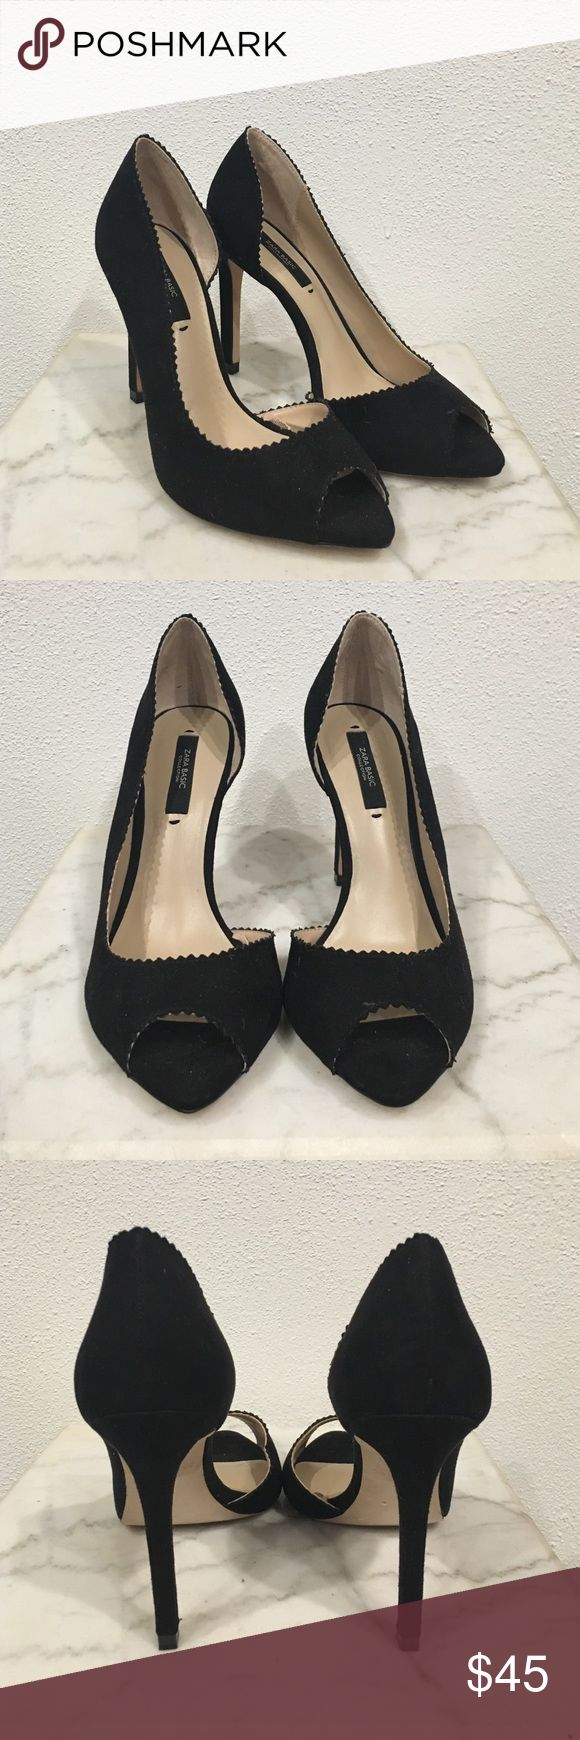 🎉THANKSGIVING SALE🎉 Zara heels New with tags. Size: 37 No trades. 0802. Zara Shoes Heels